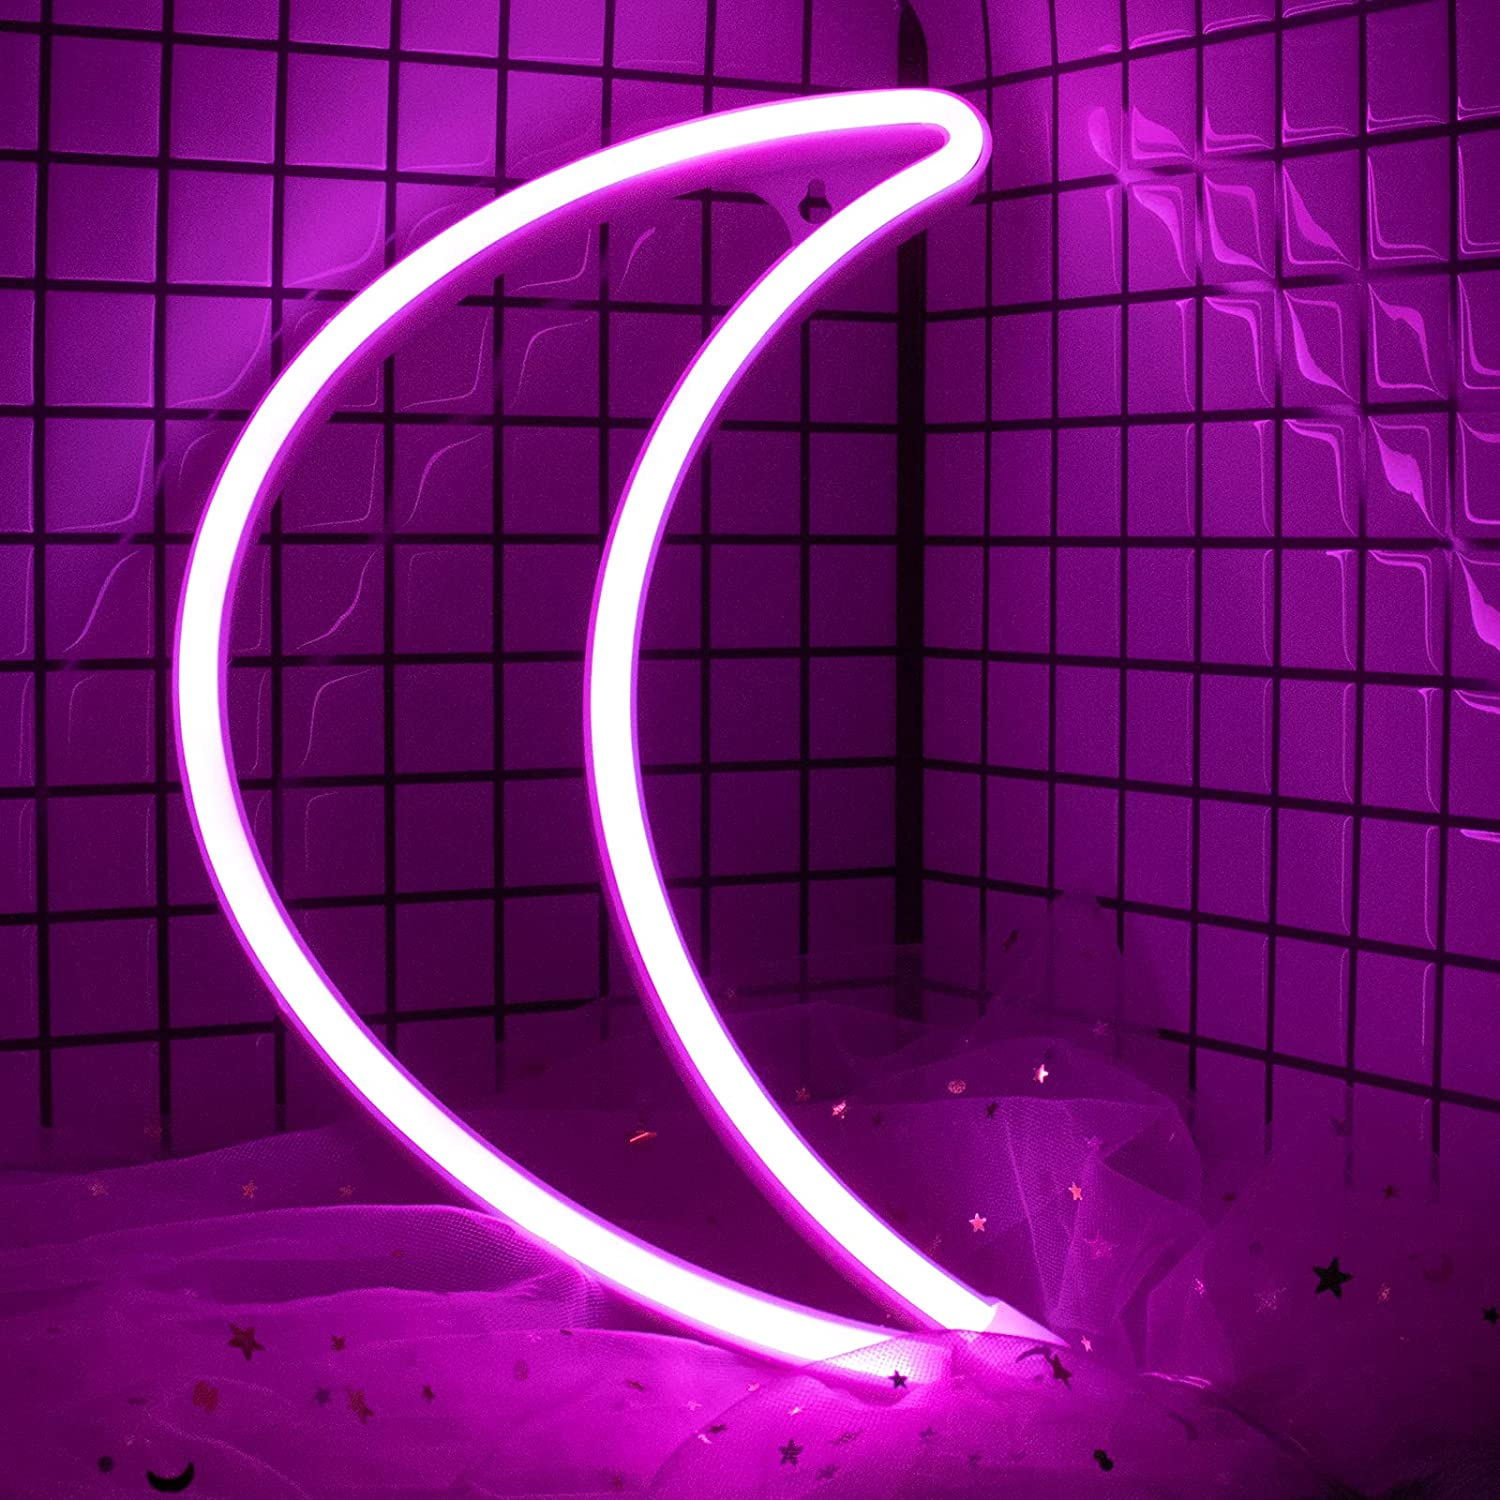 Moon Neon Signs Lights for Wall Decor, USB/Battery LED Night Light for Bedroom, Decorative Neon Sign Light for Bedroom, Valentine's Day, Birthday Party, Living Room, Girls, Kids Room (Pink)